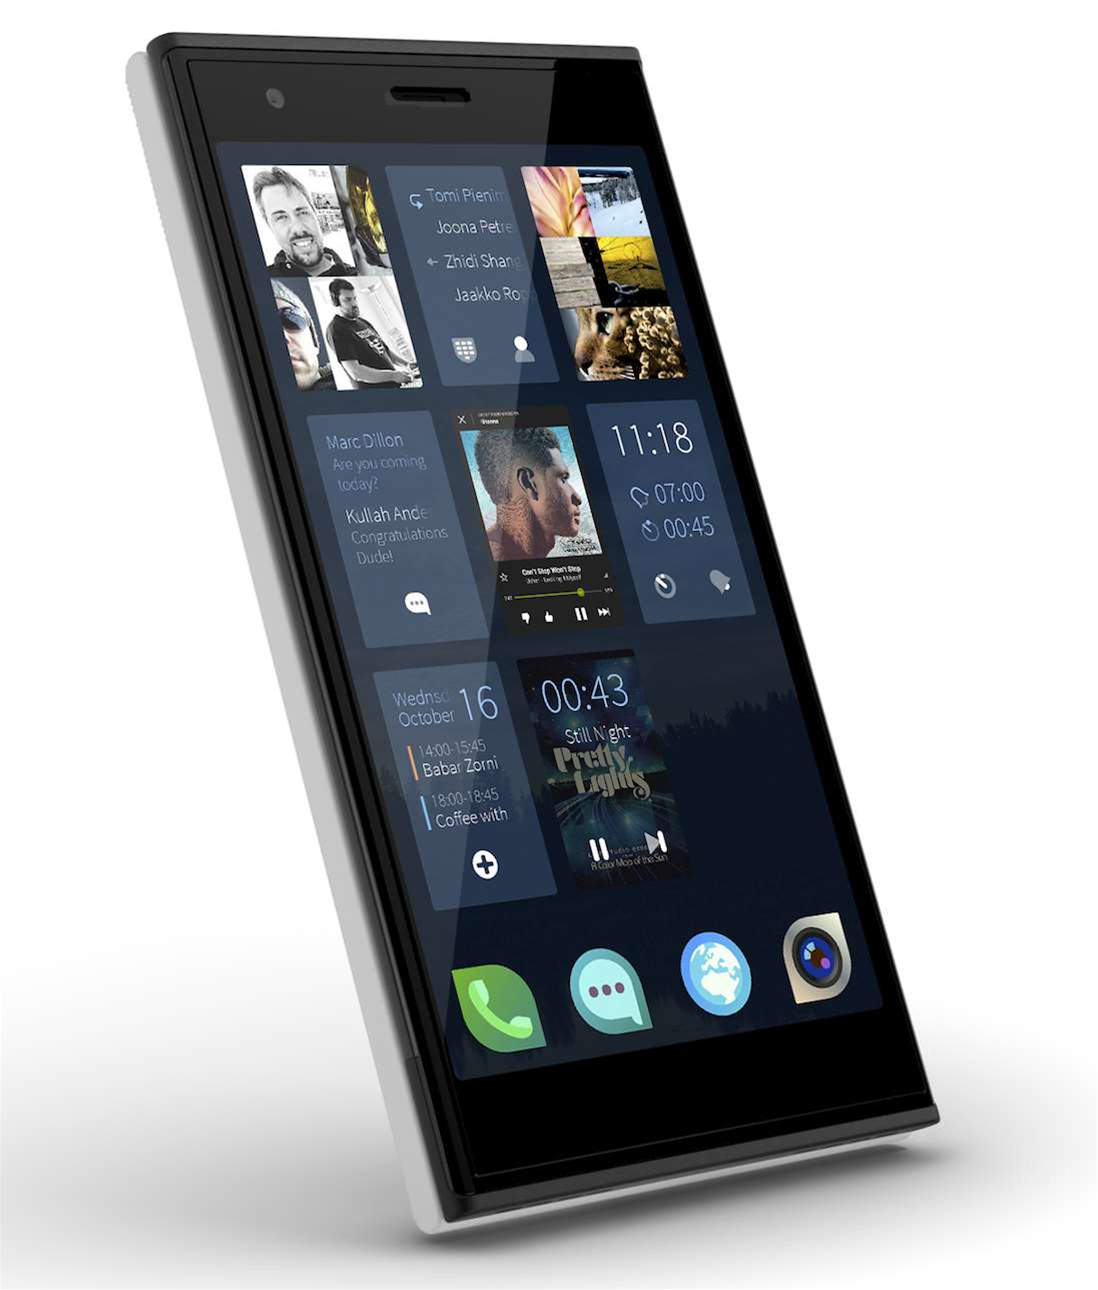 Jolla Linux-based smartphone launches